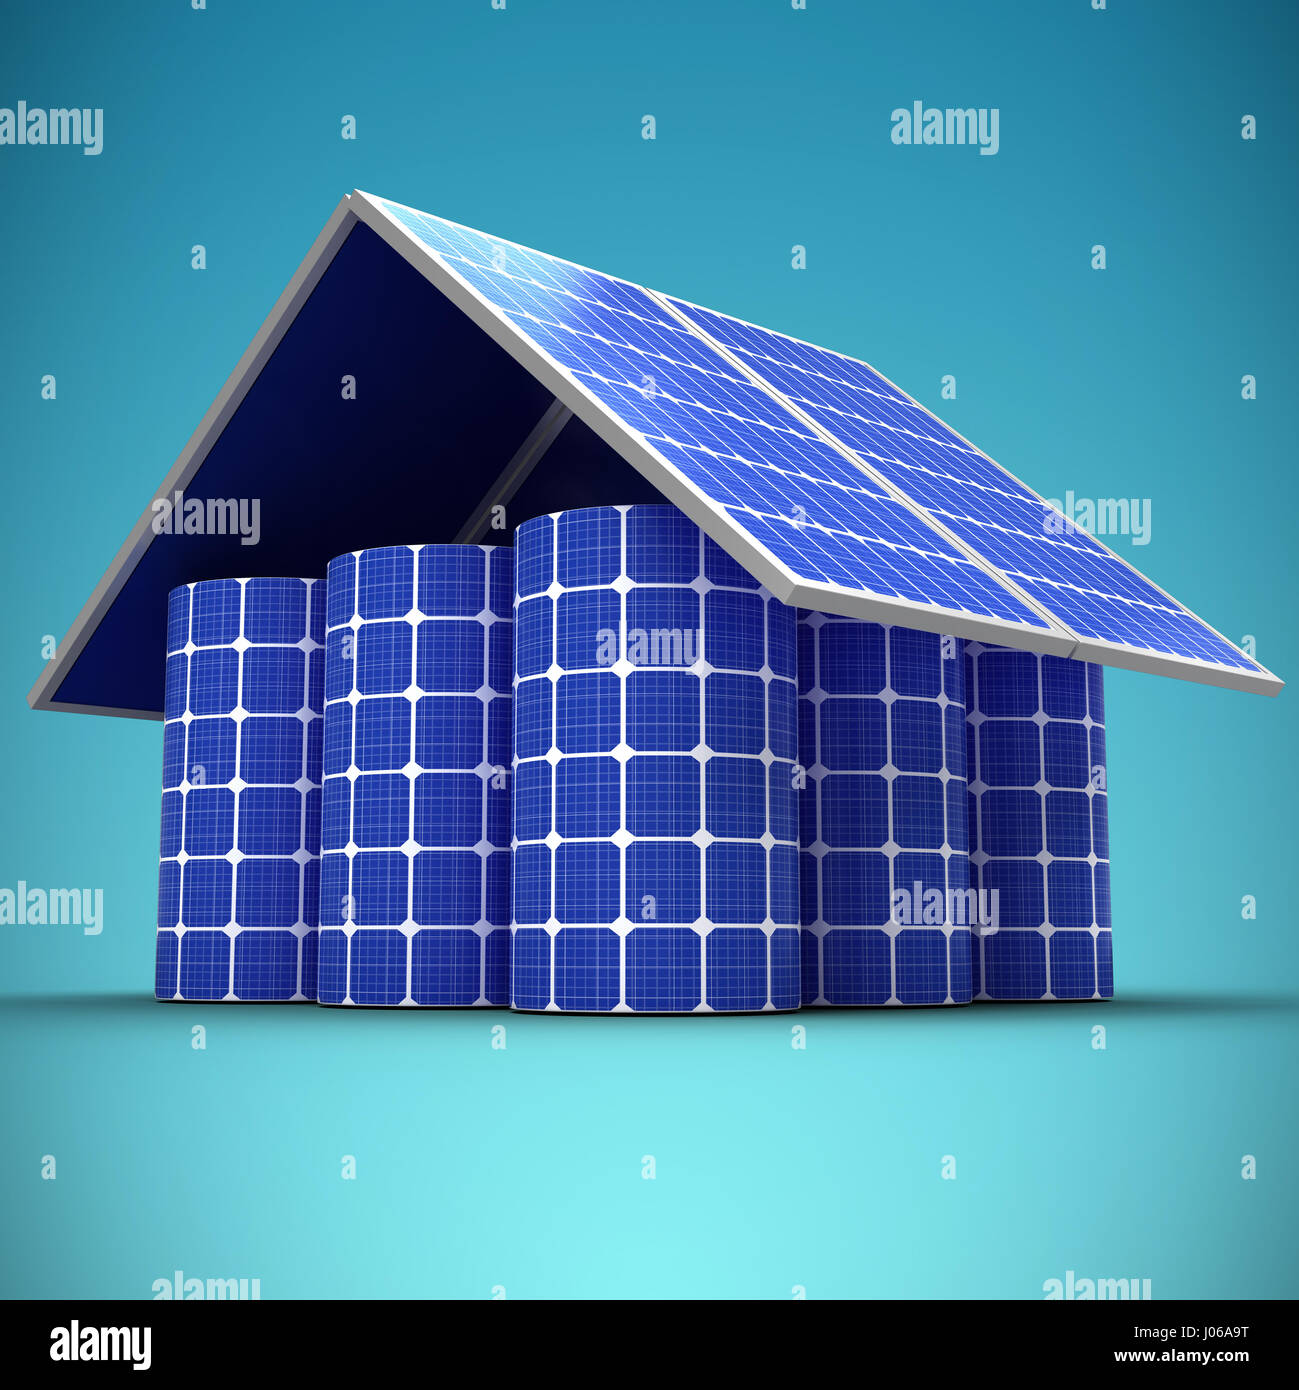 3d image of house made from solar panels and cells against blue vignette background - Stock Image